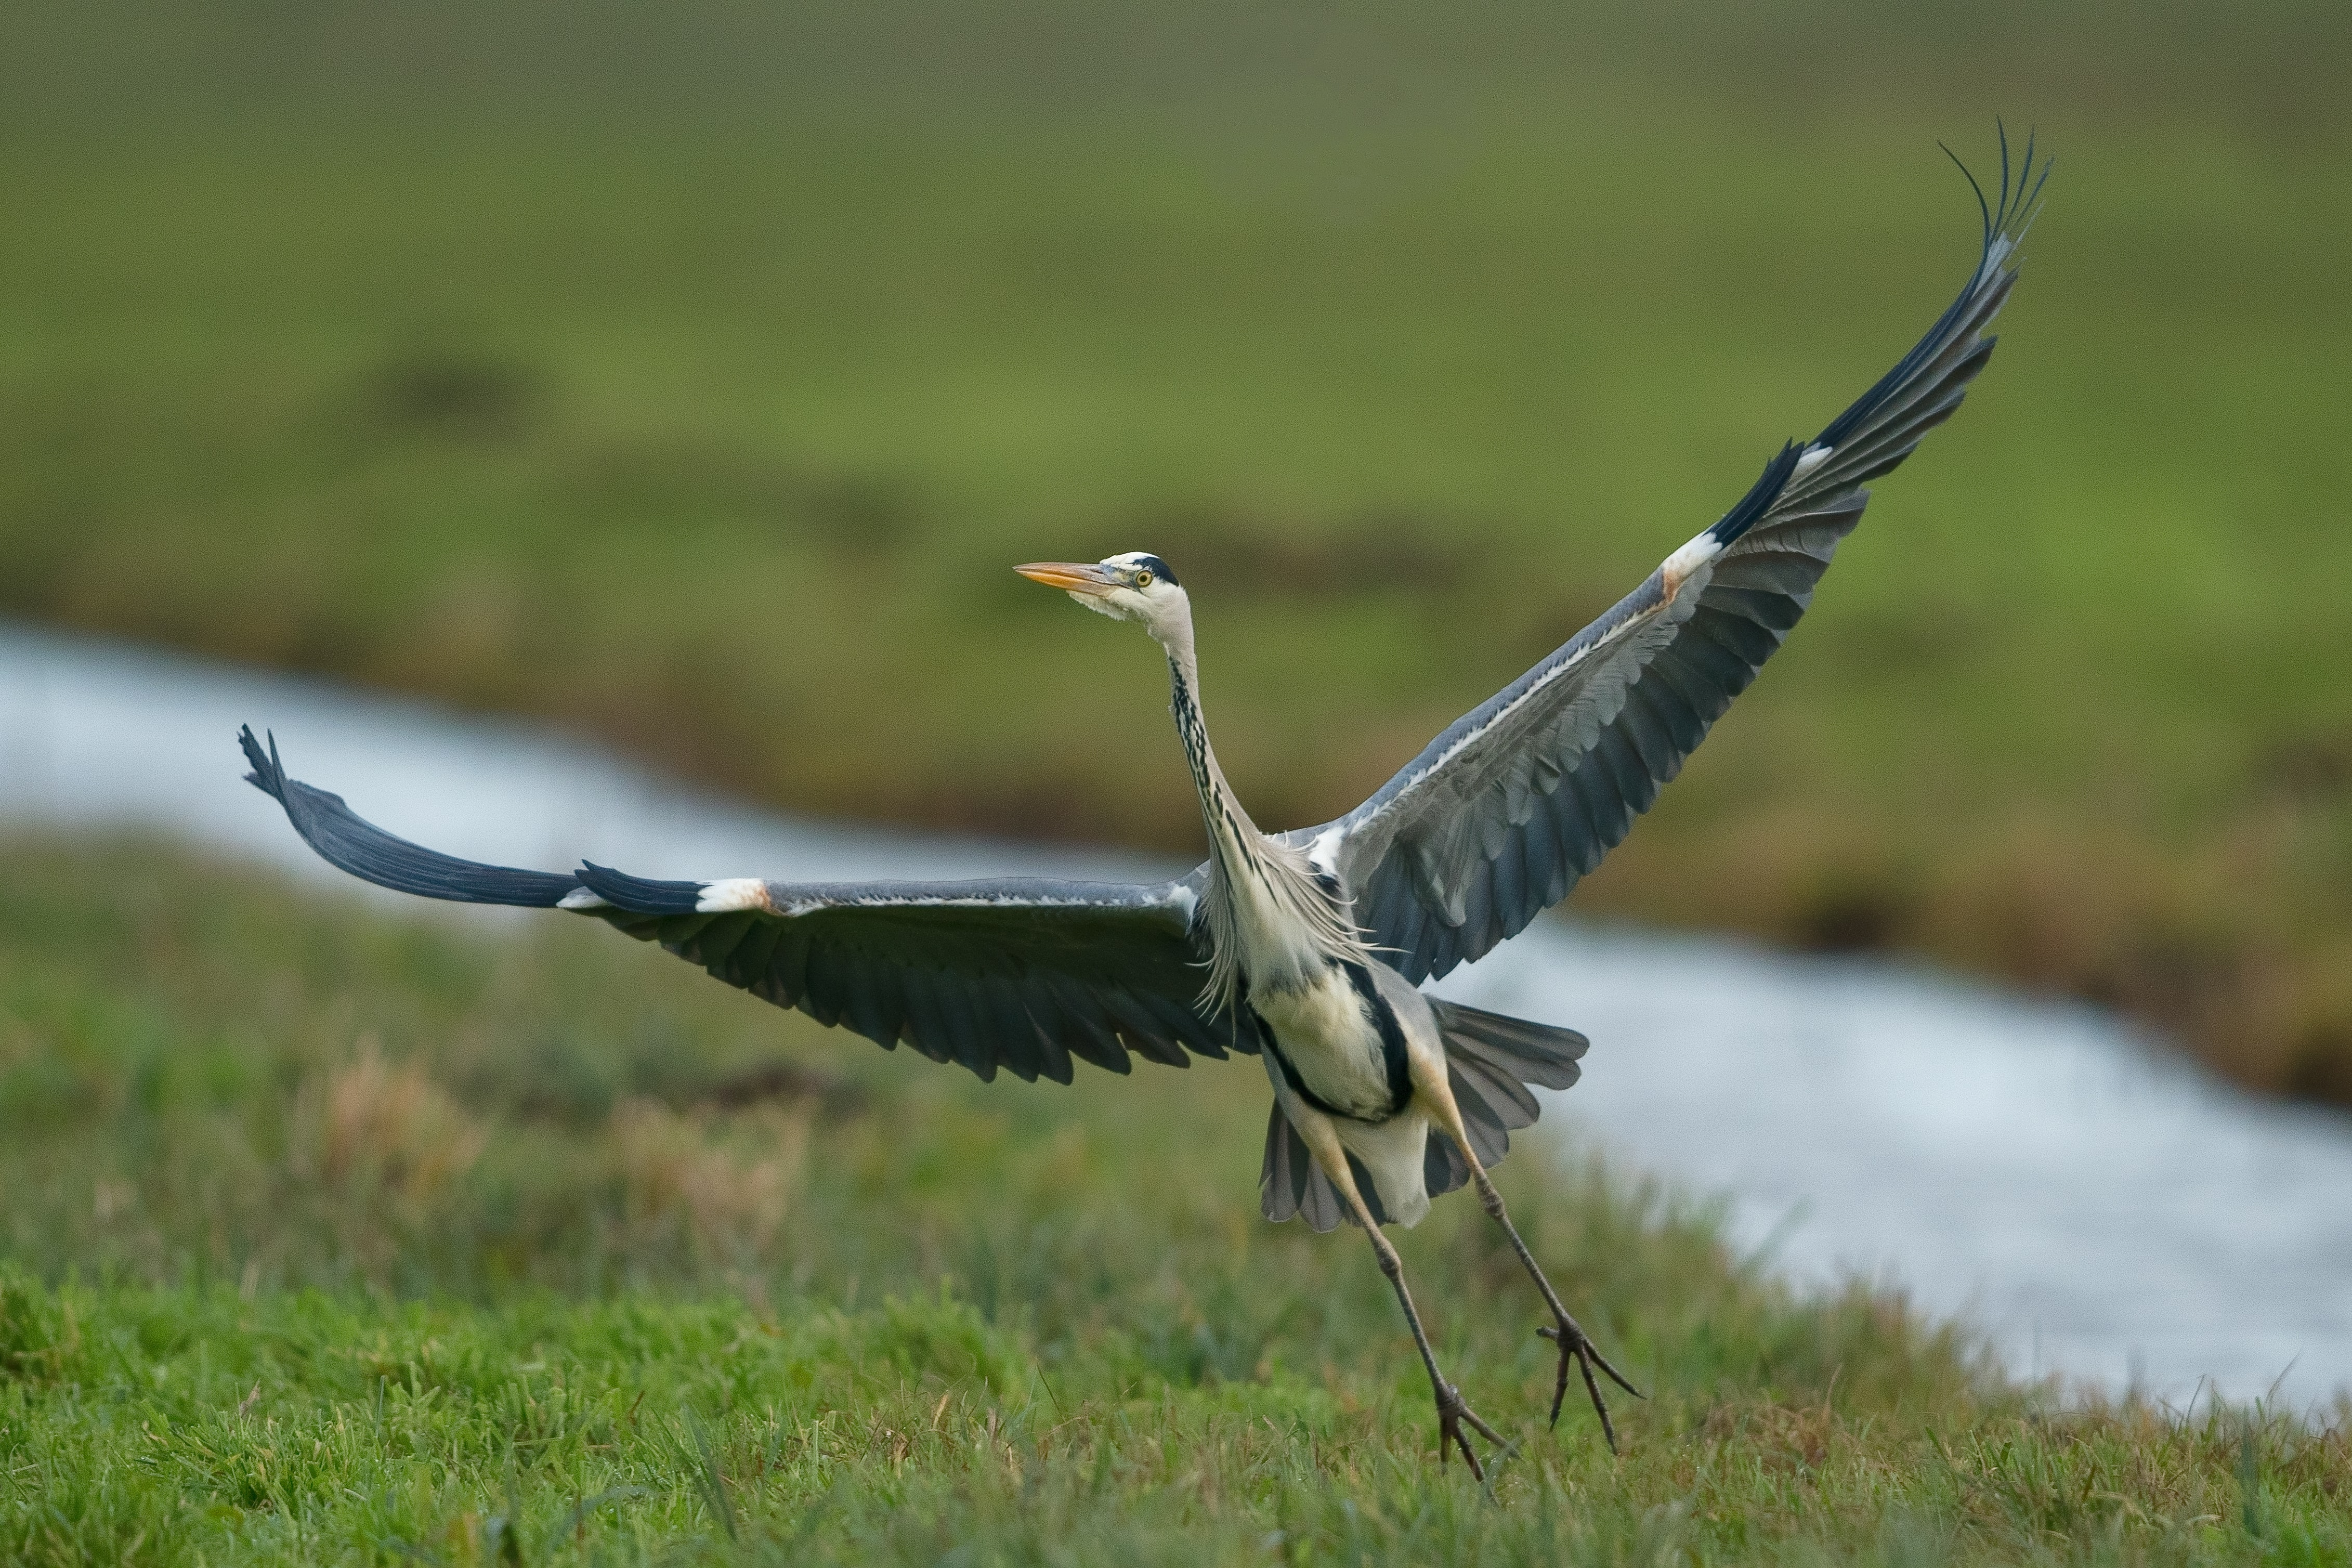 photography of bird about to flying